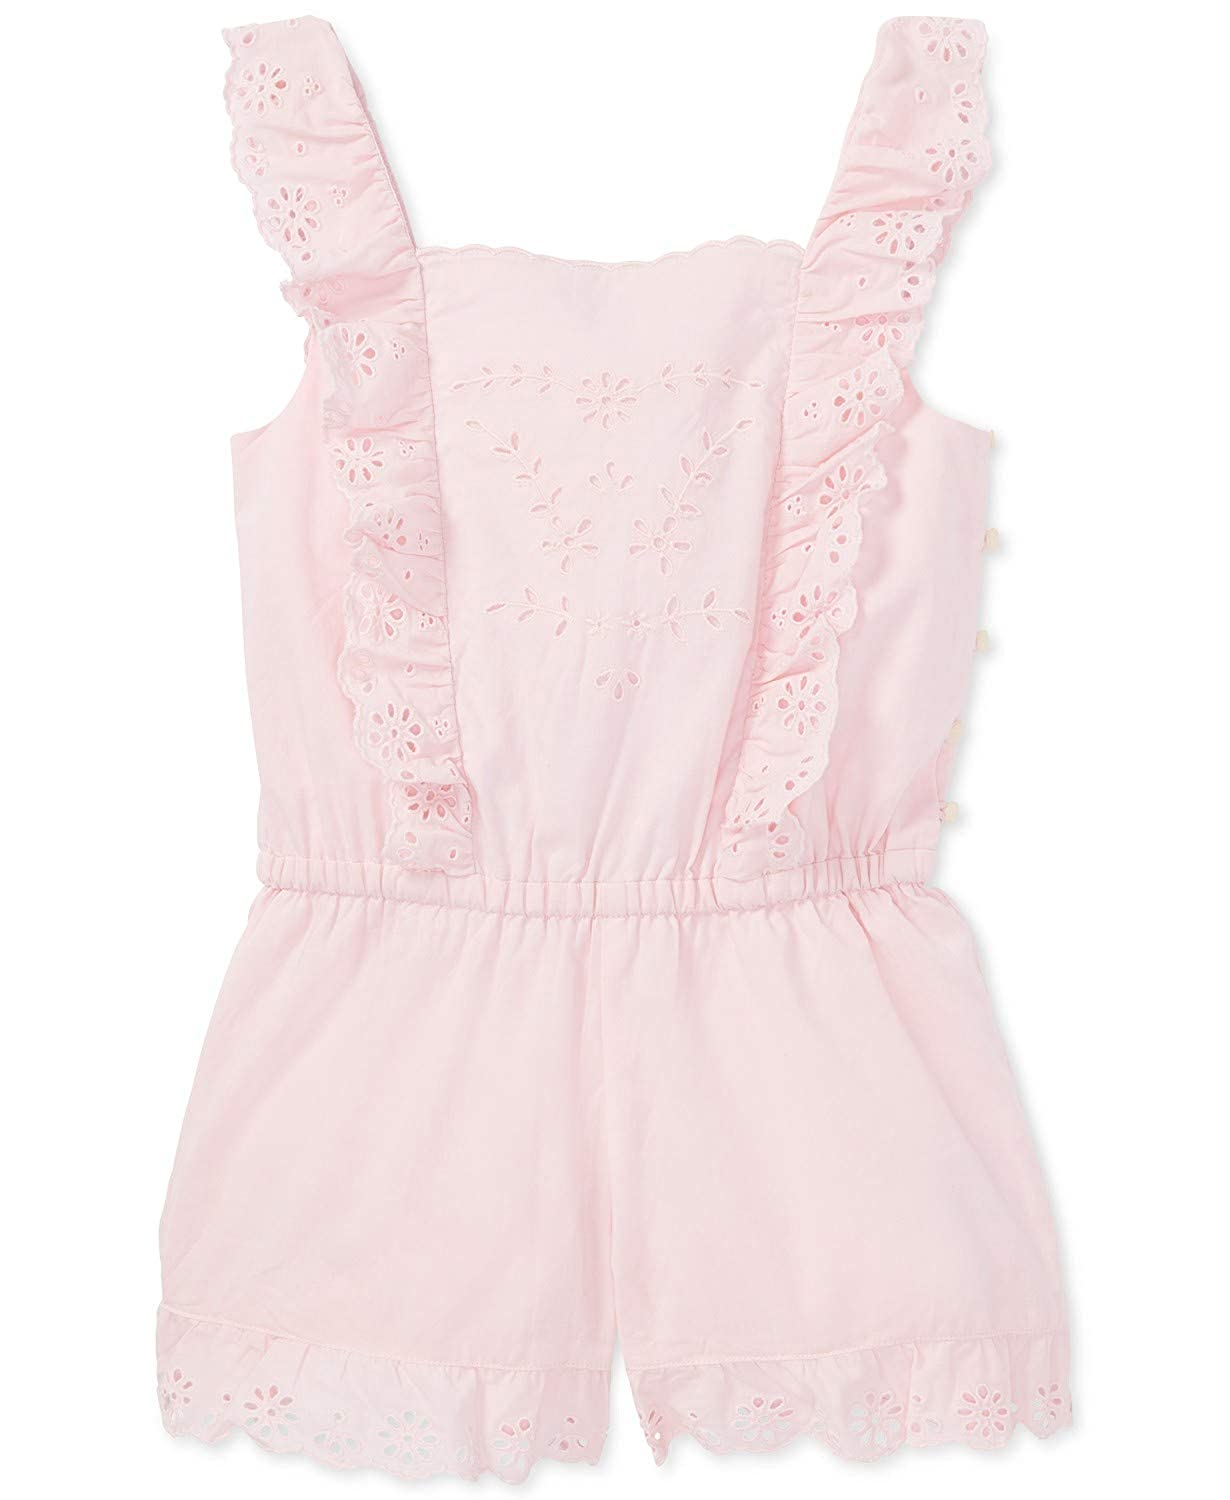 RALPH LAUREN Polo Girls Sleeveless Eyelet Ruffled Cotton Romper 8